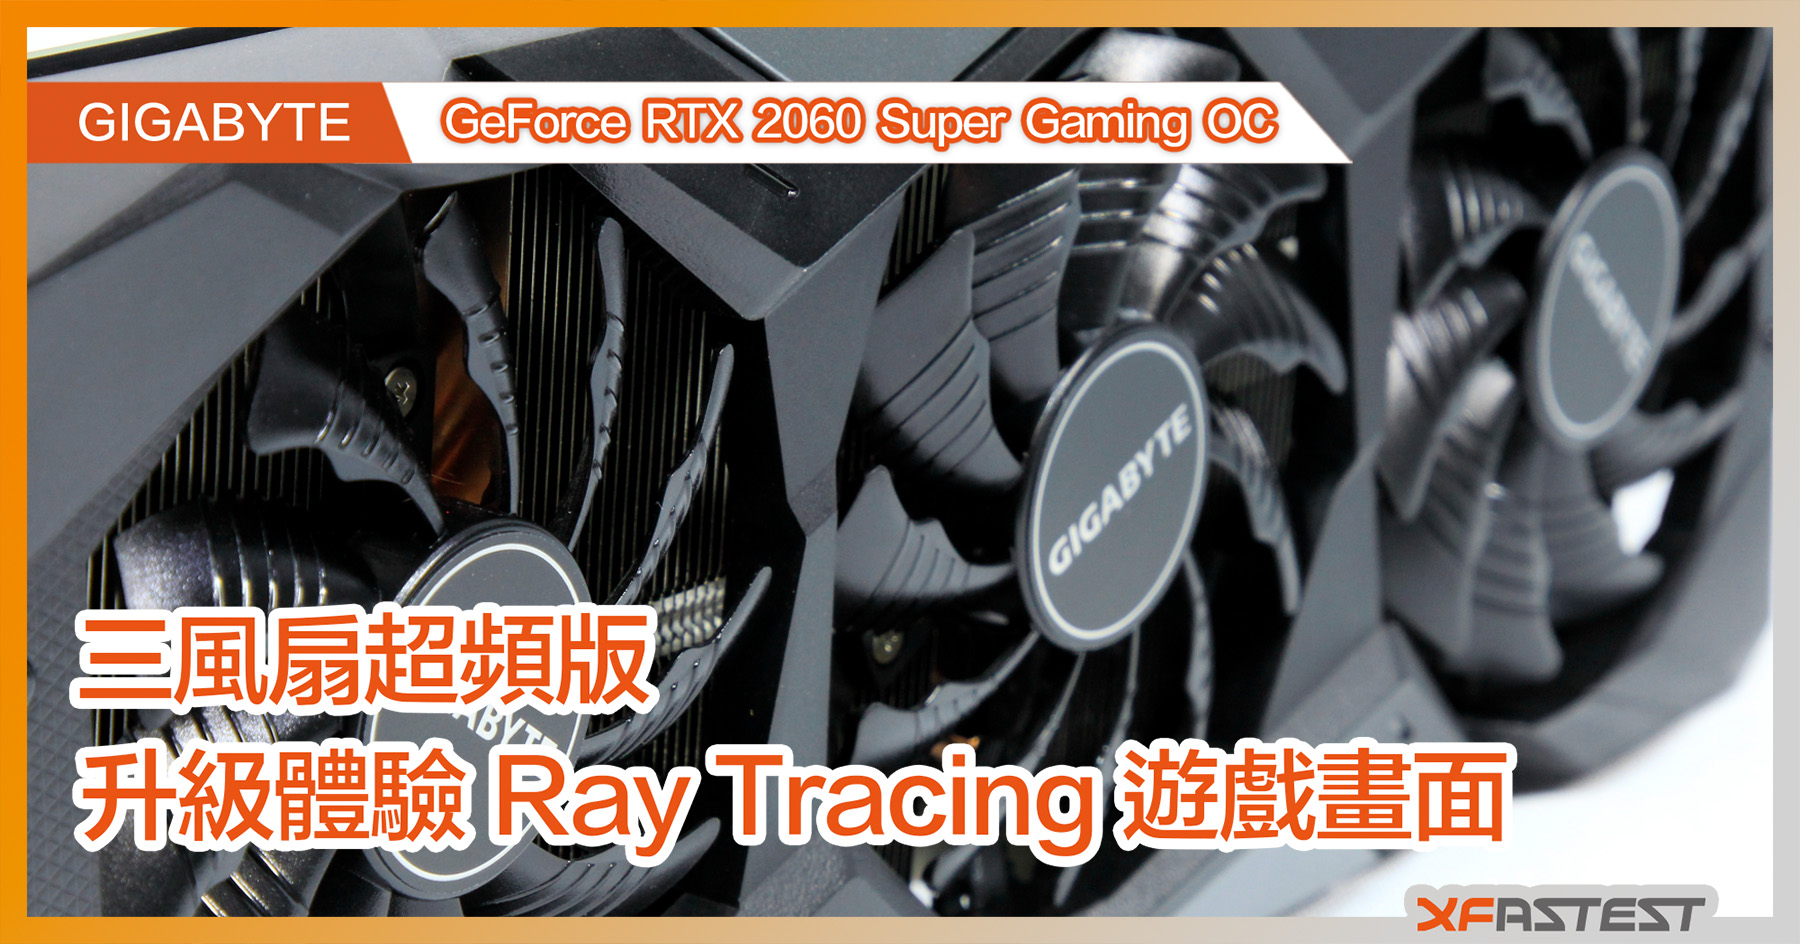 [XF 開箱] 升級體驗Ray Tracing 遊戲畫面GIGABYTE GeForce RTX 2060 Super Gaming OC 8G 三風扇超頻版 - XFastest HK